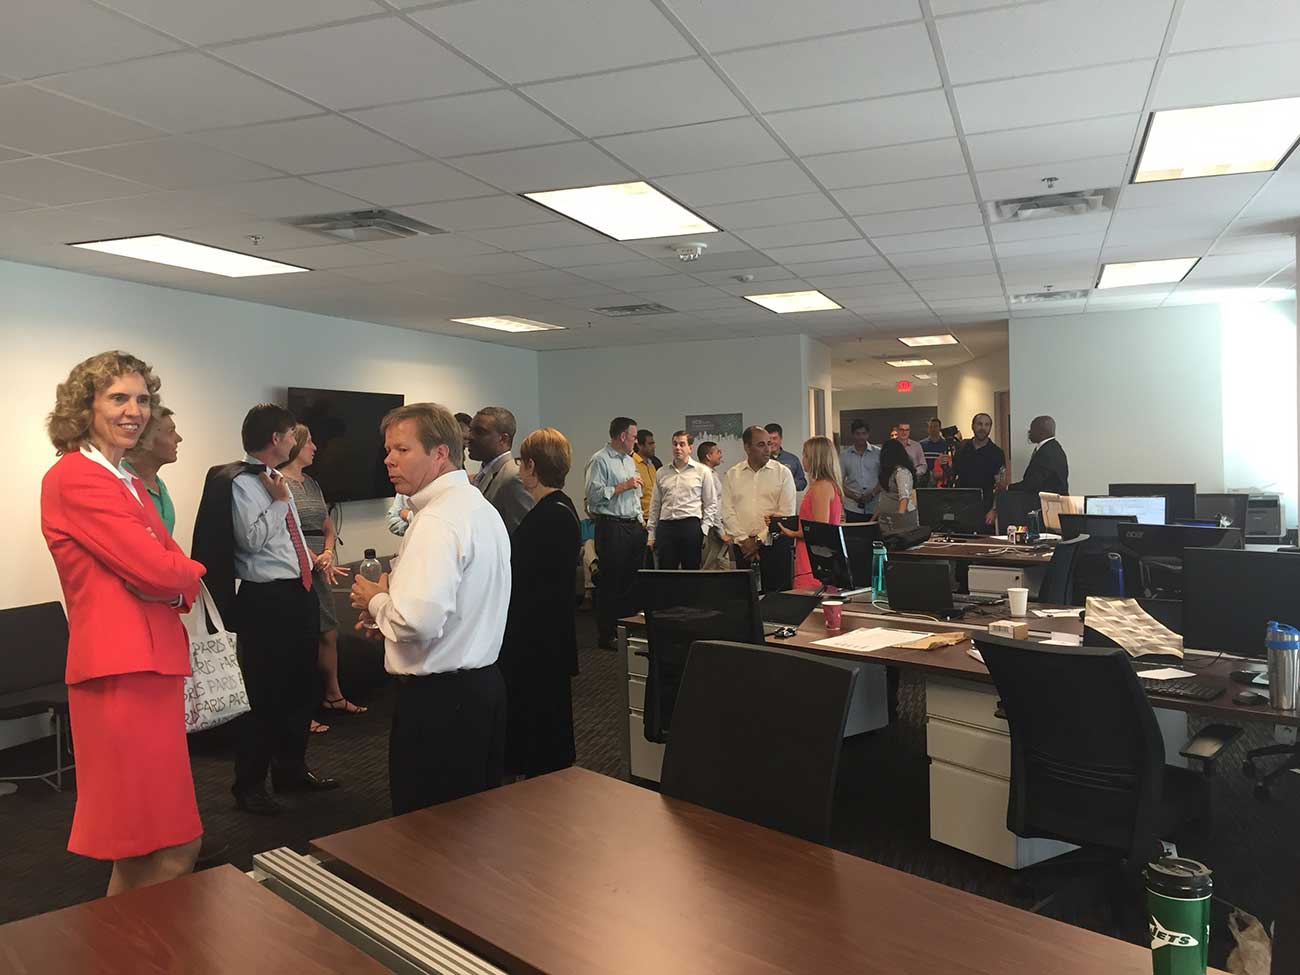 Charlotte startup DealCloud just moved from coworking into a new Uptown office